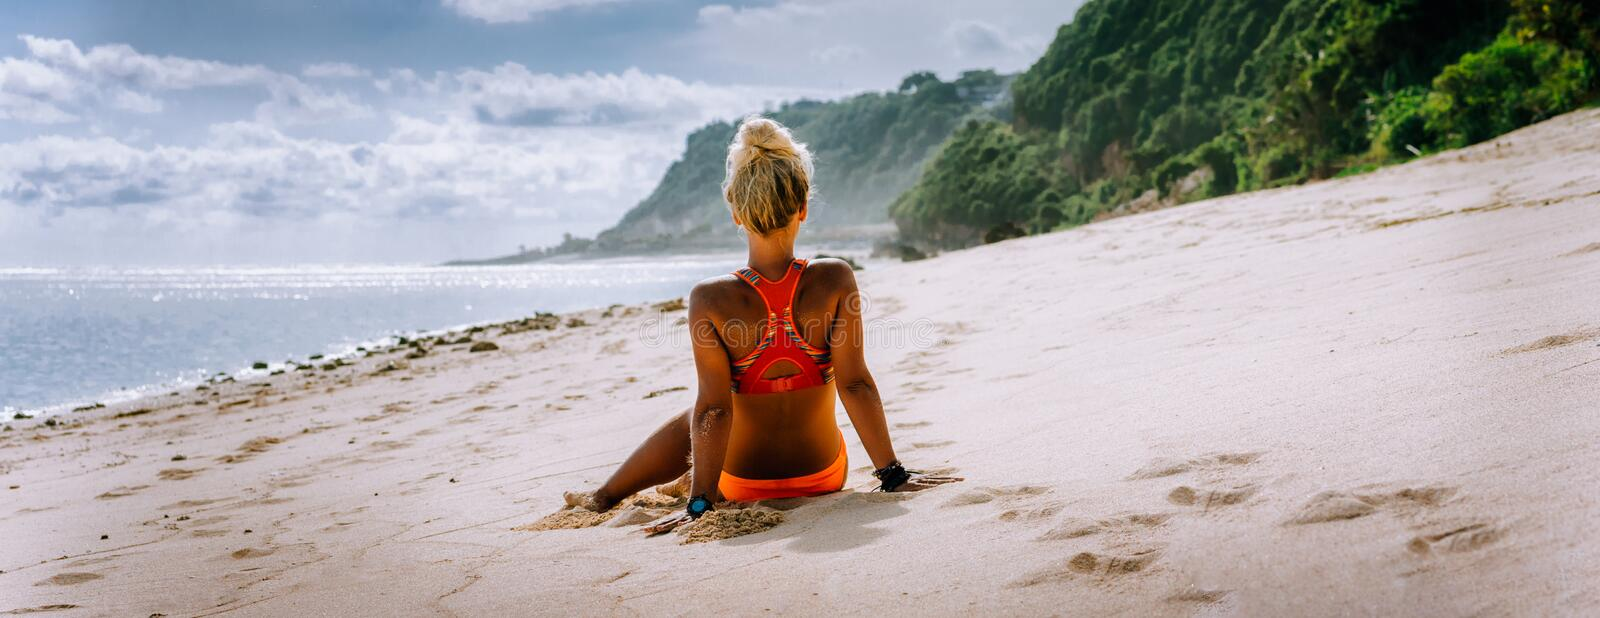 Tanned blonde tourist woman on summer vacation, beach, Bali. Travel wanderlust vacation concept stock photography